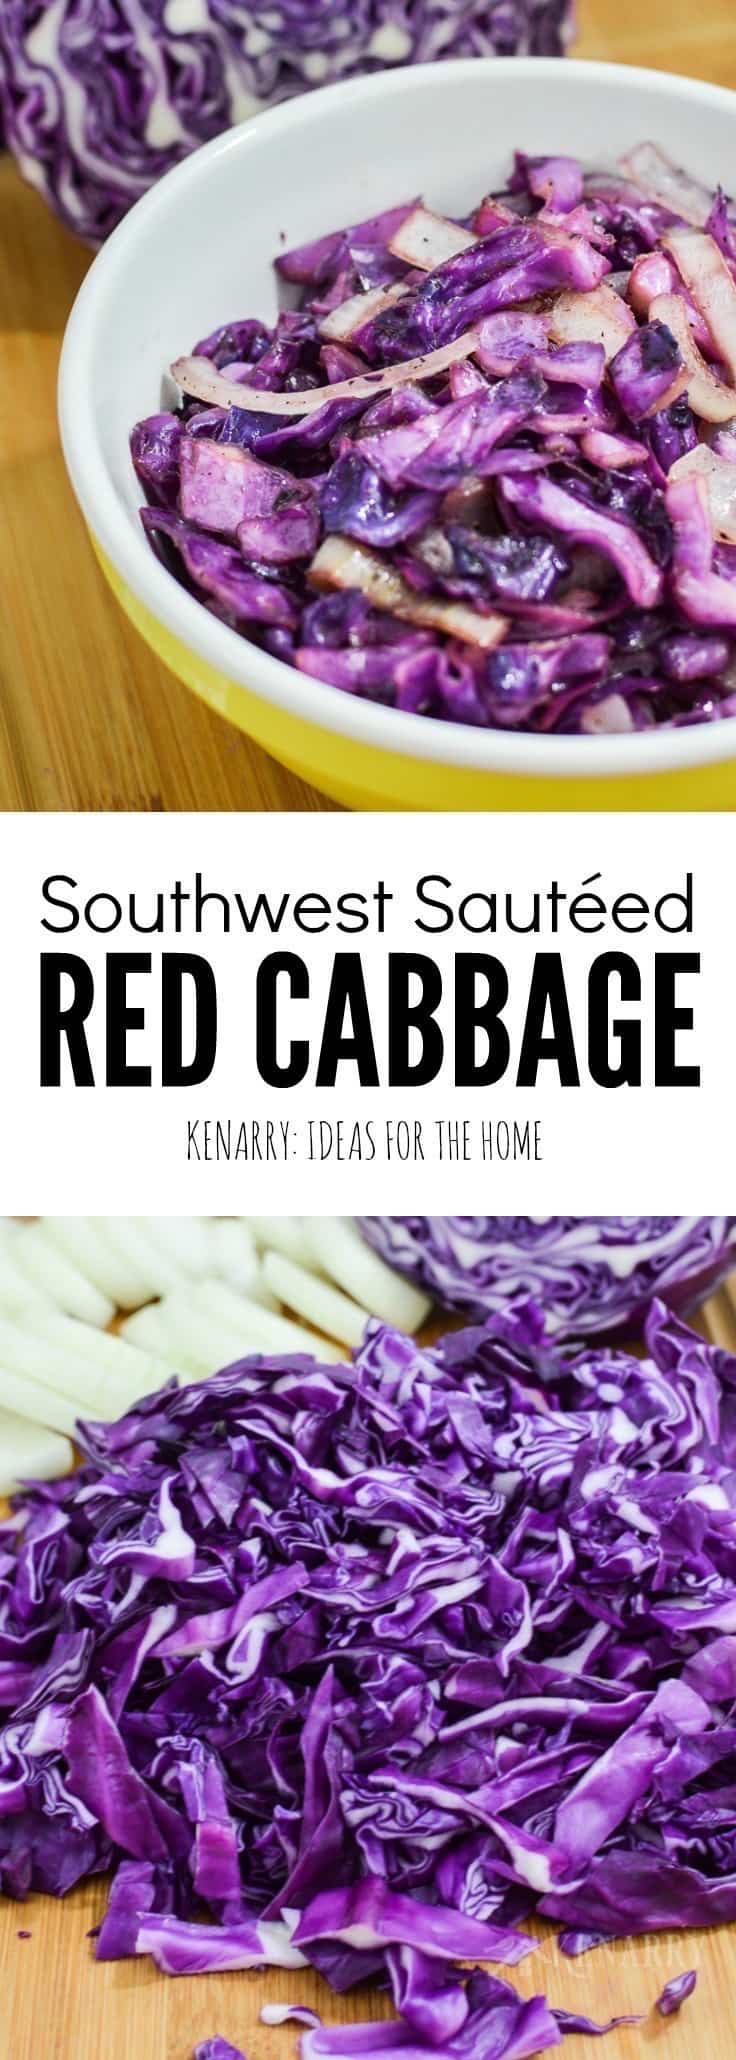 This red cabbage recipe is a delicious side dish that goes great with any dinner. With cumin, onion and southwest style, it's especially great with tacos, burritos and other Mexican meals.